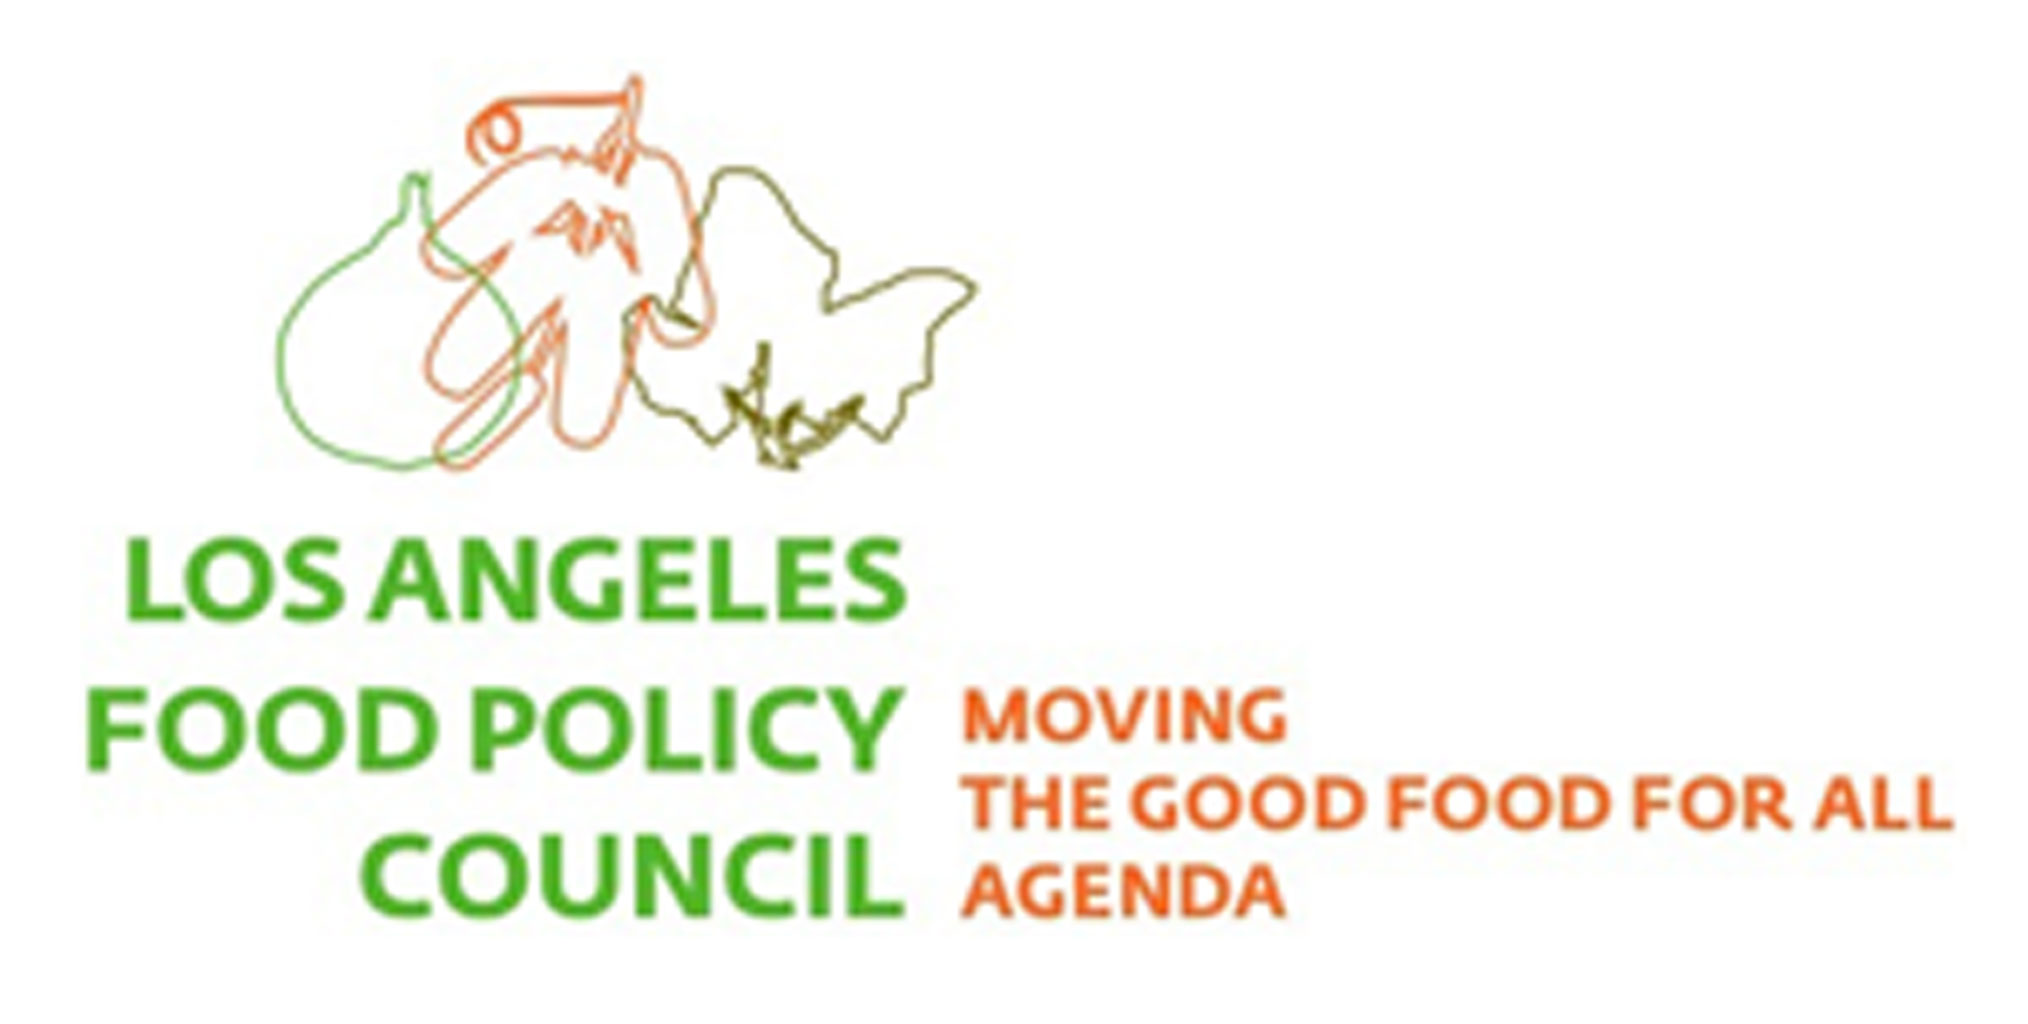 Los Angeles Food Policy Council